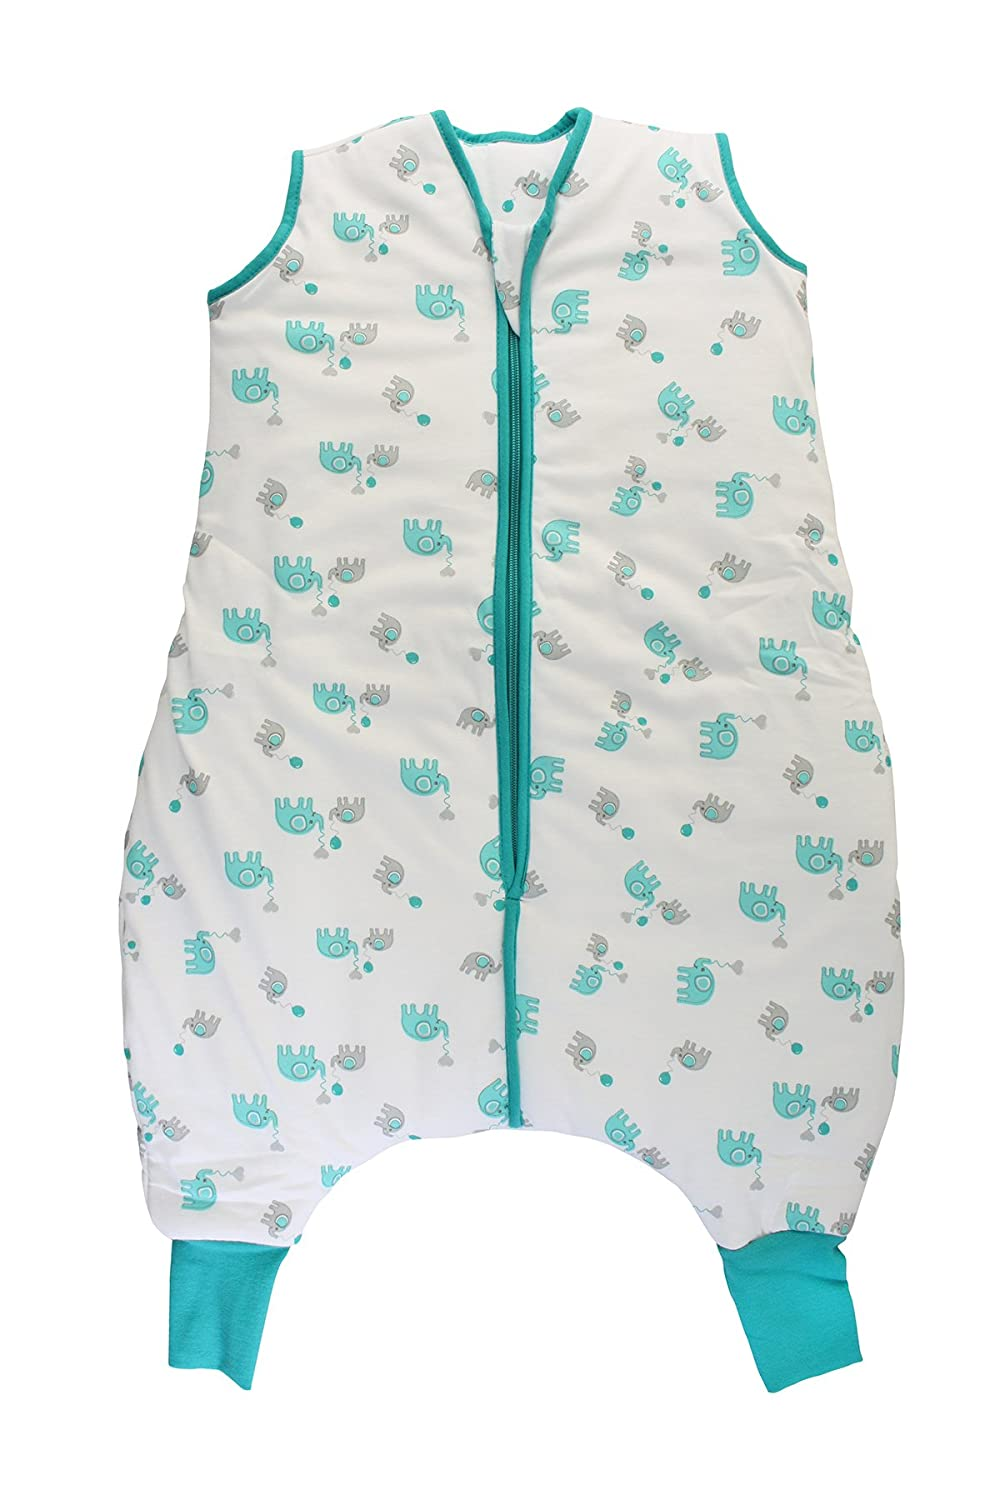 Slumbersac Sleeping Bag with Feet 2.5 Tog Simply Blue Elephants 18-24 Months